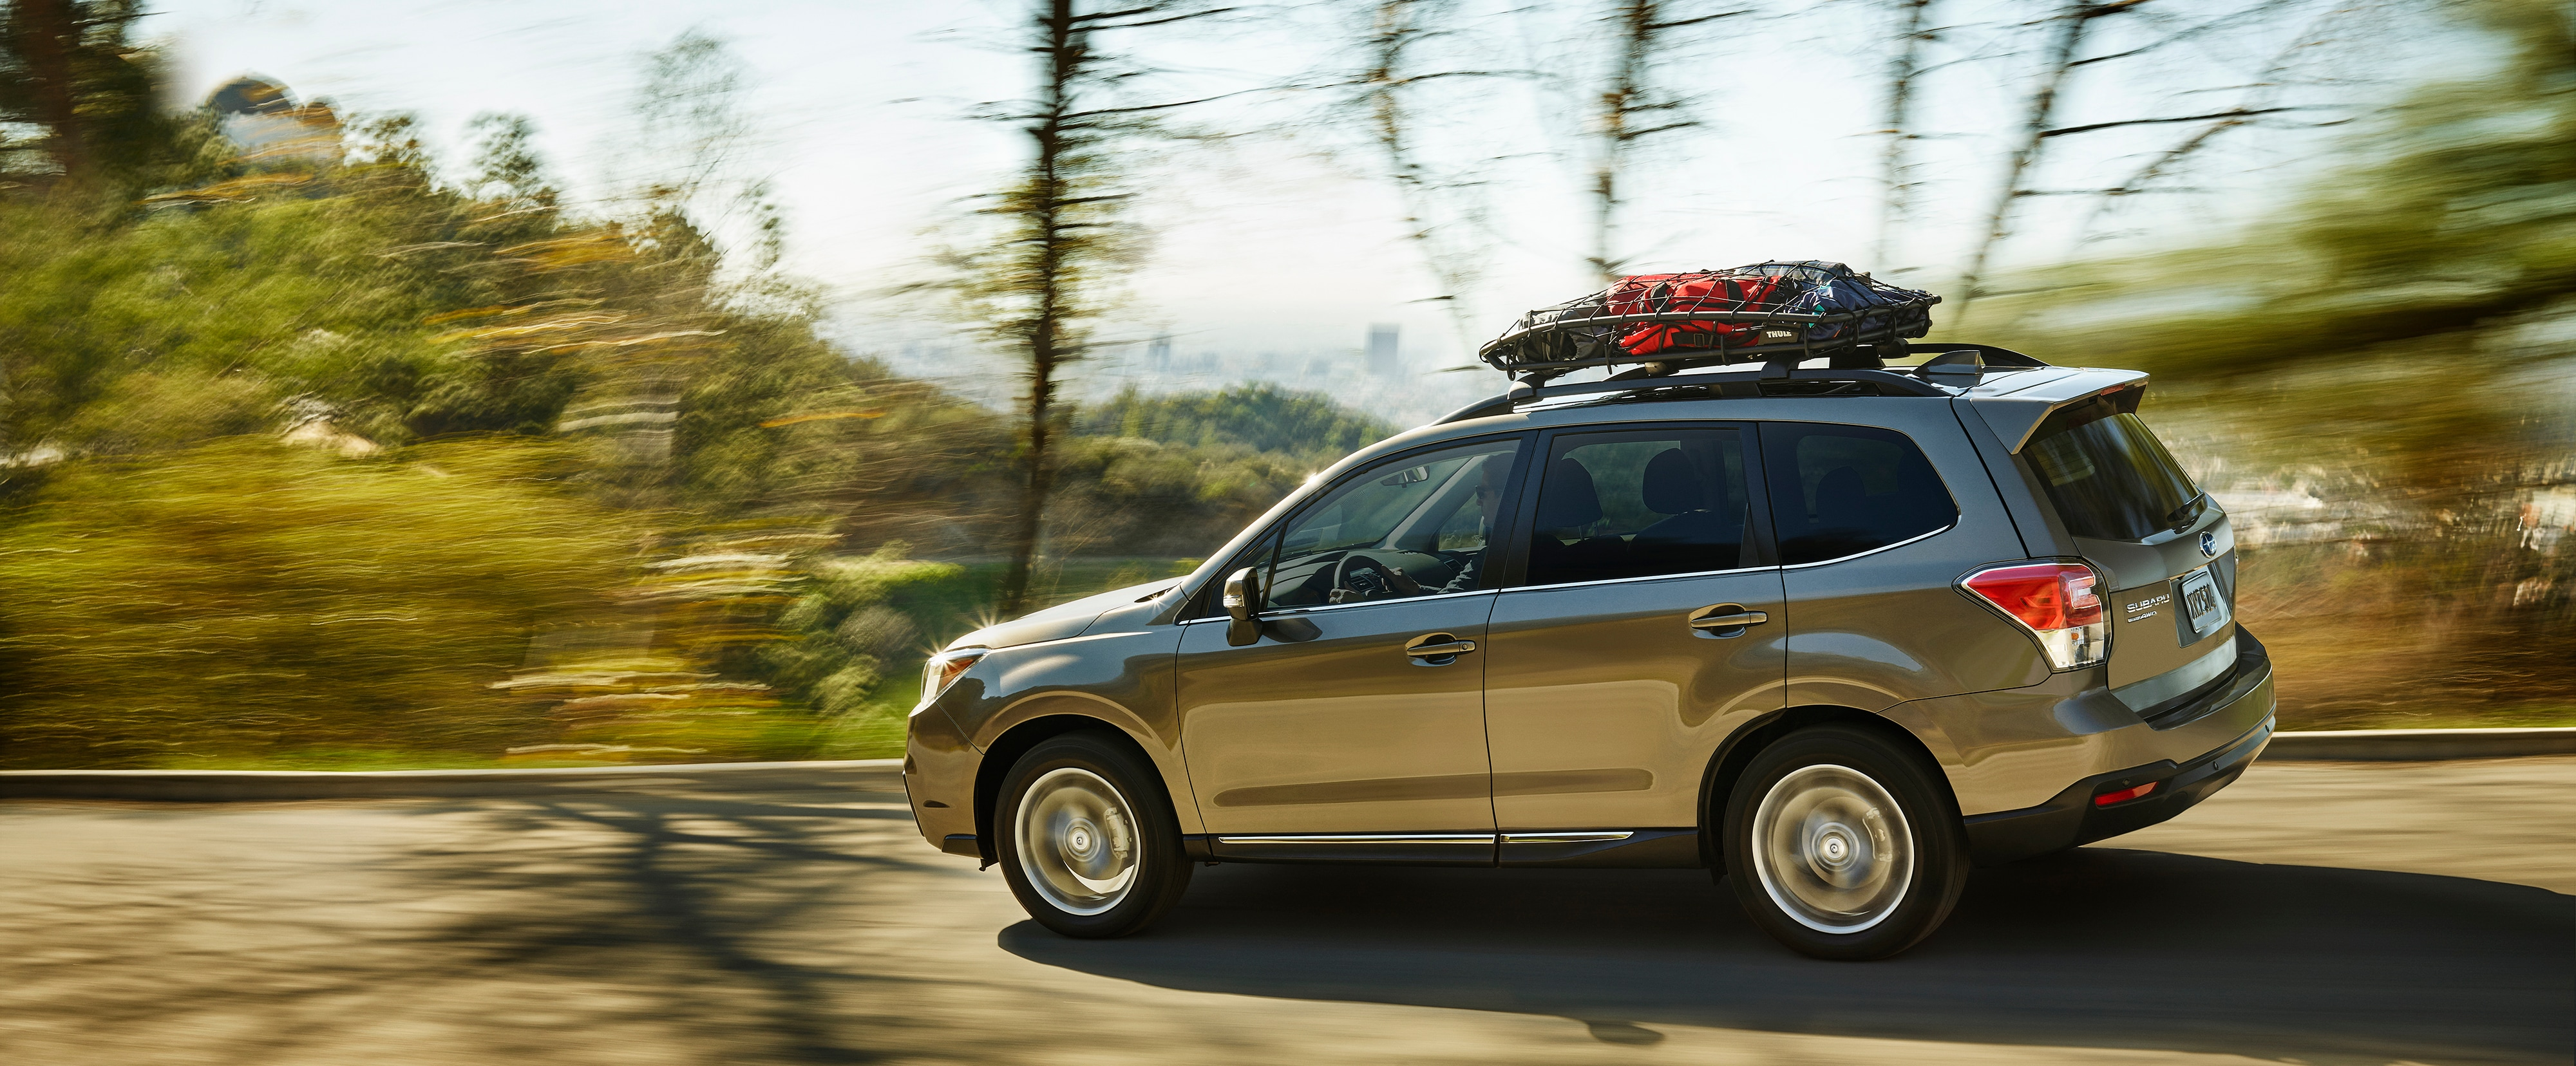 2018 subaru forester compared to the nissan rogue compare the subaru forester to the competition. Black Bedroom Furniture Sets. Home Design Ideas